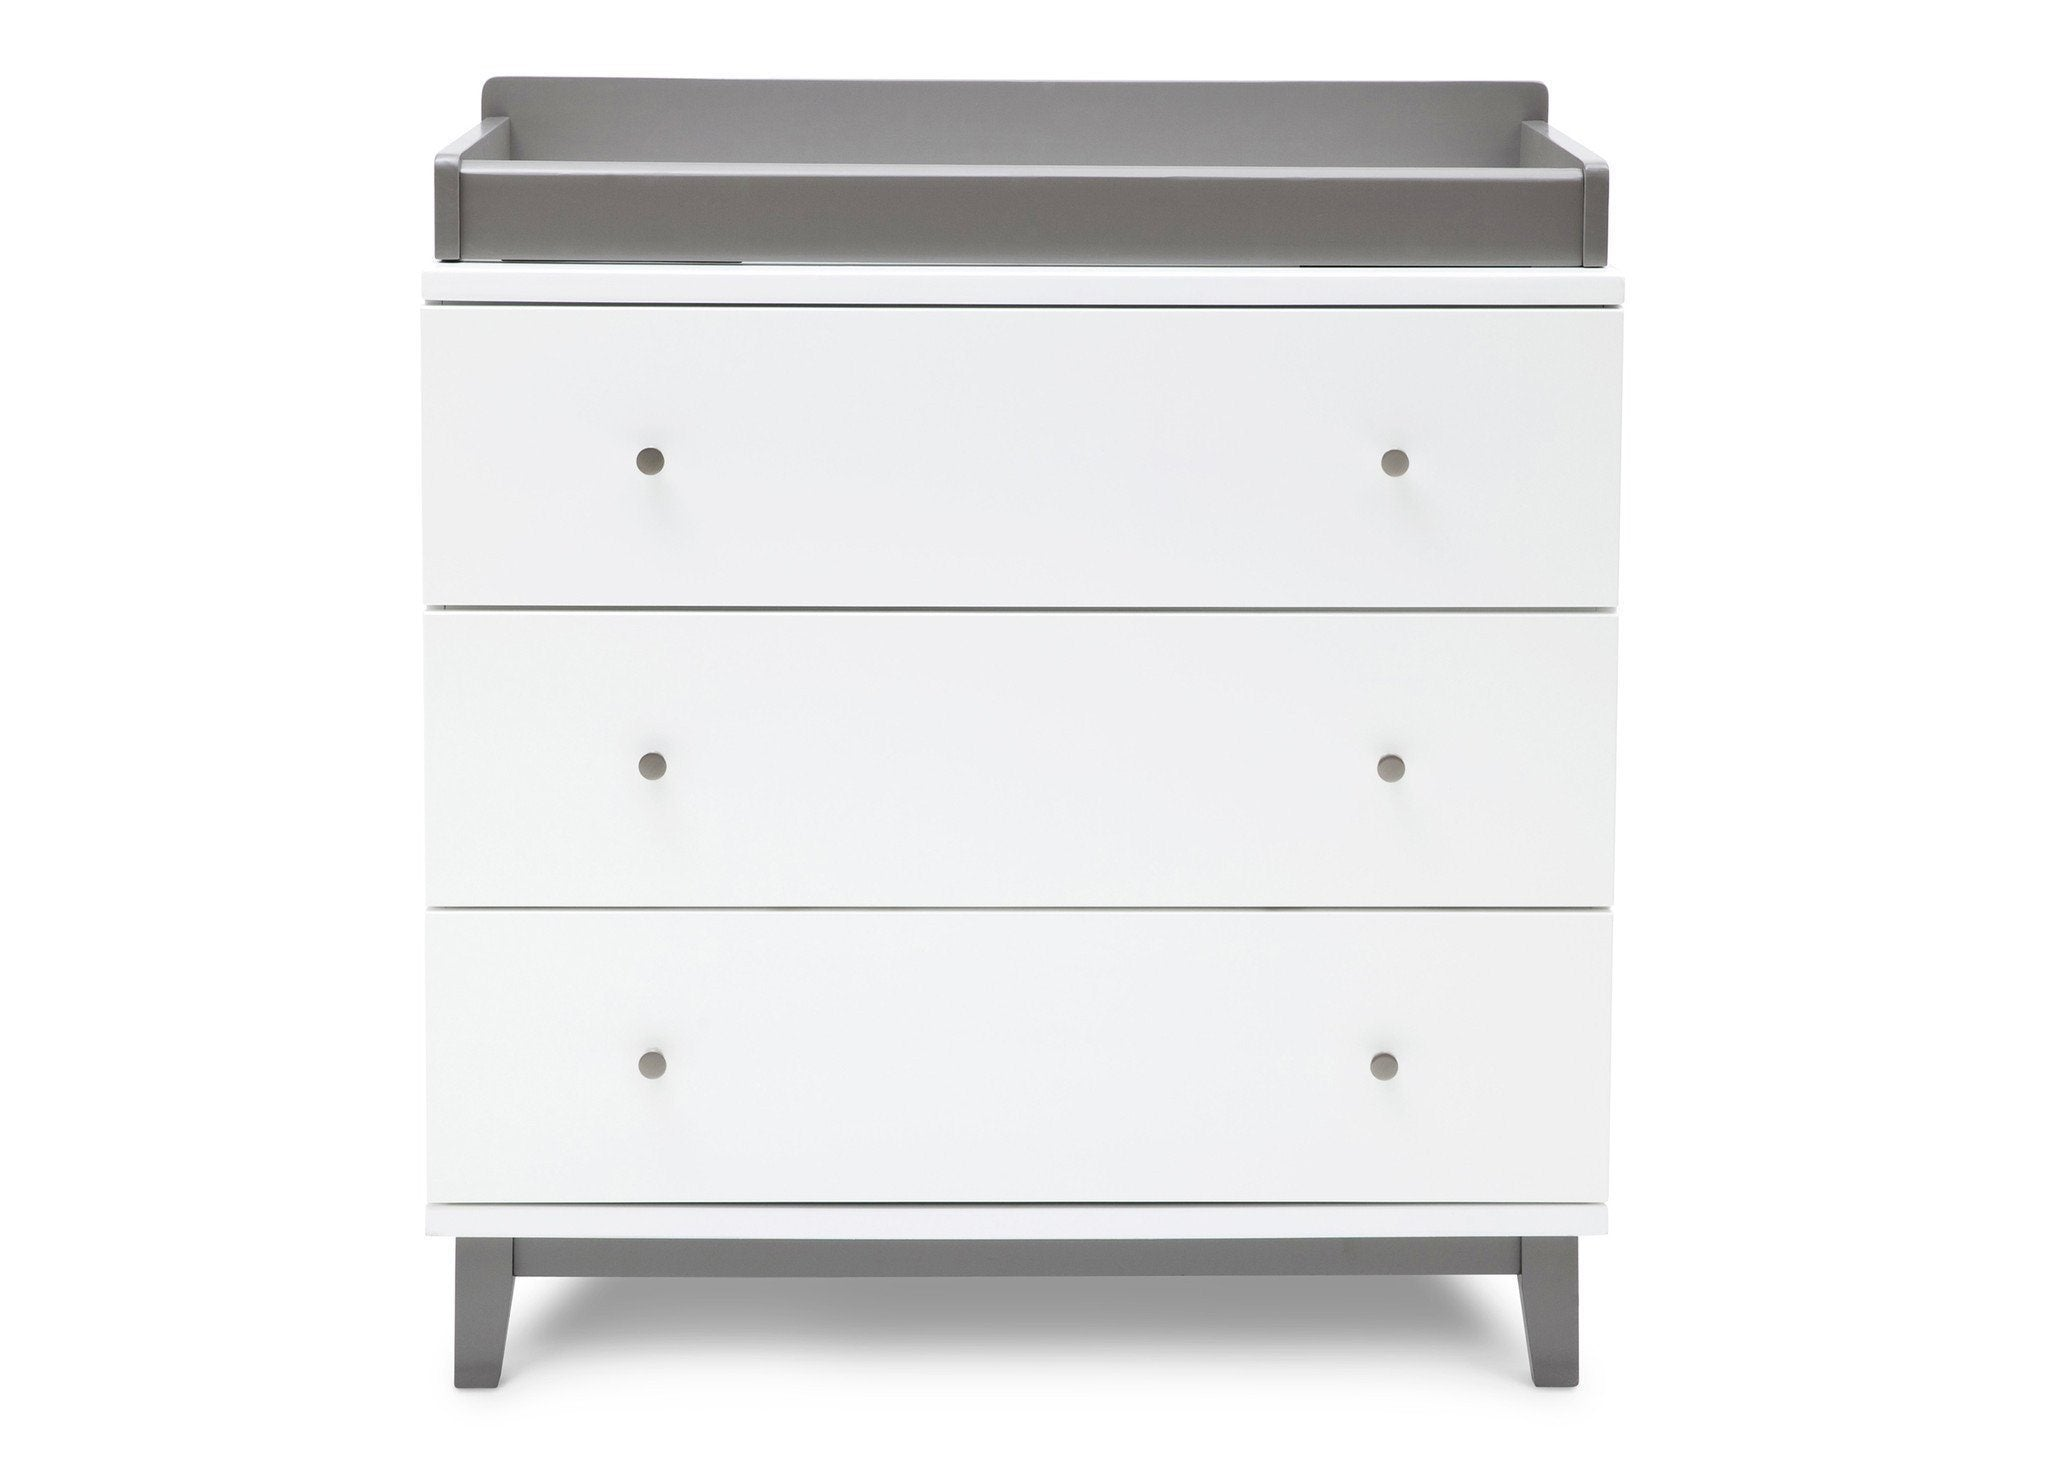 Delta Children White / Grey (027) Tribeca Three-Drawer Dresser Front View with Changing Top a3a